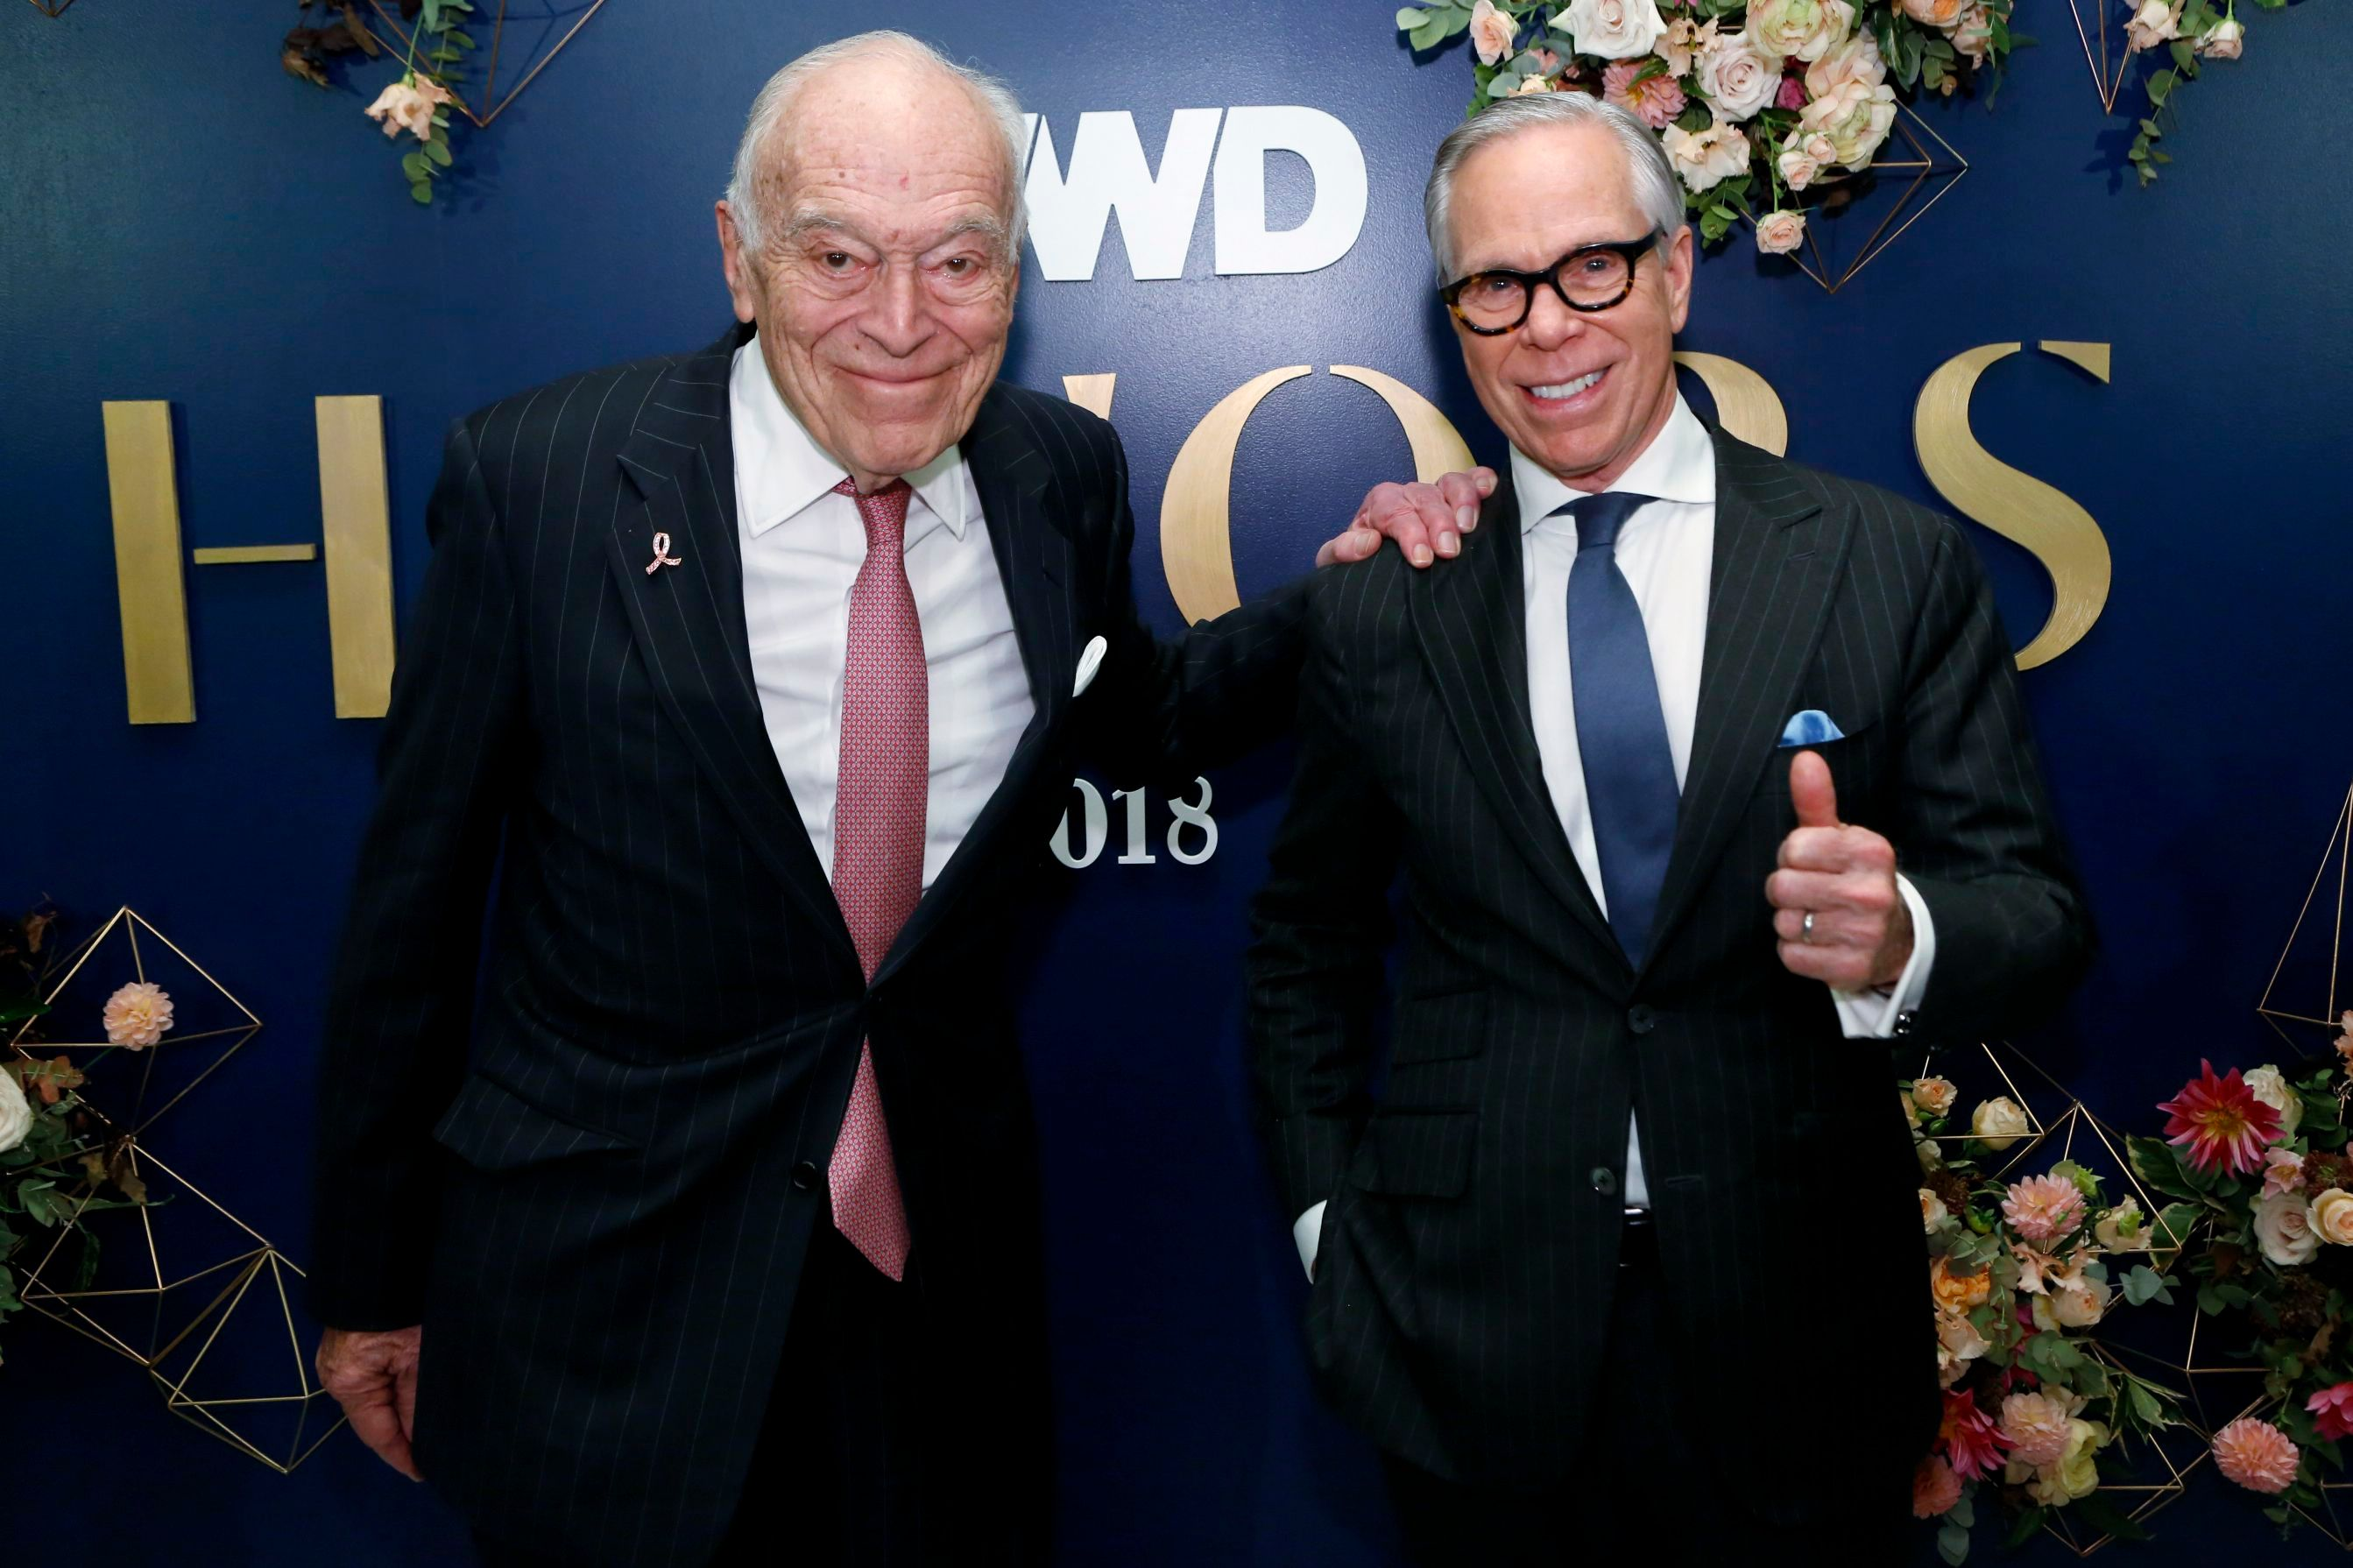 Leonard Lauder and Tommy Hilfiger3rd Annual WWD Honors, Arrivals, New York, USA - 30 Oct 2018